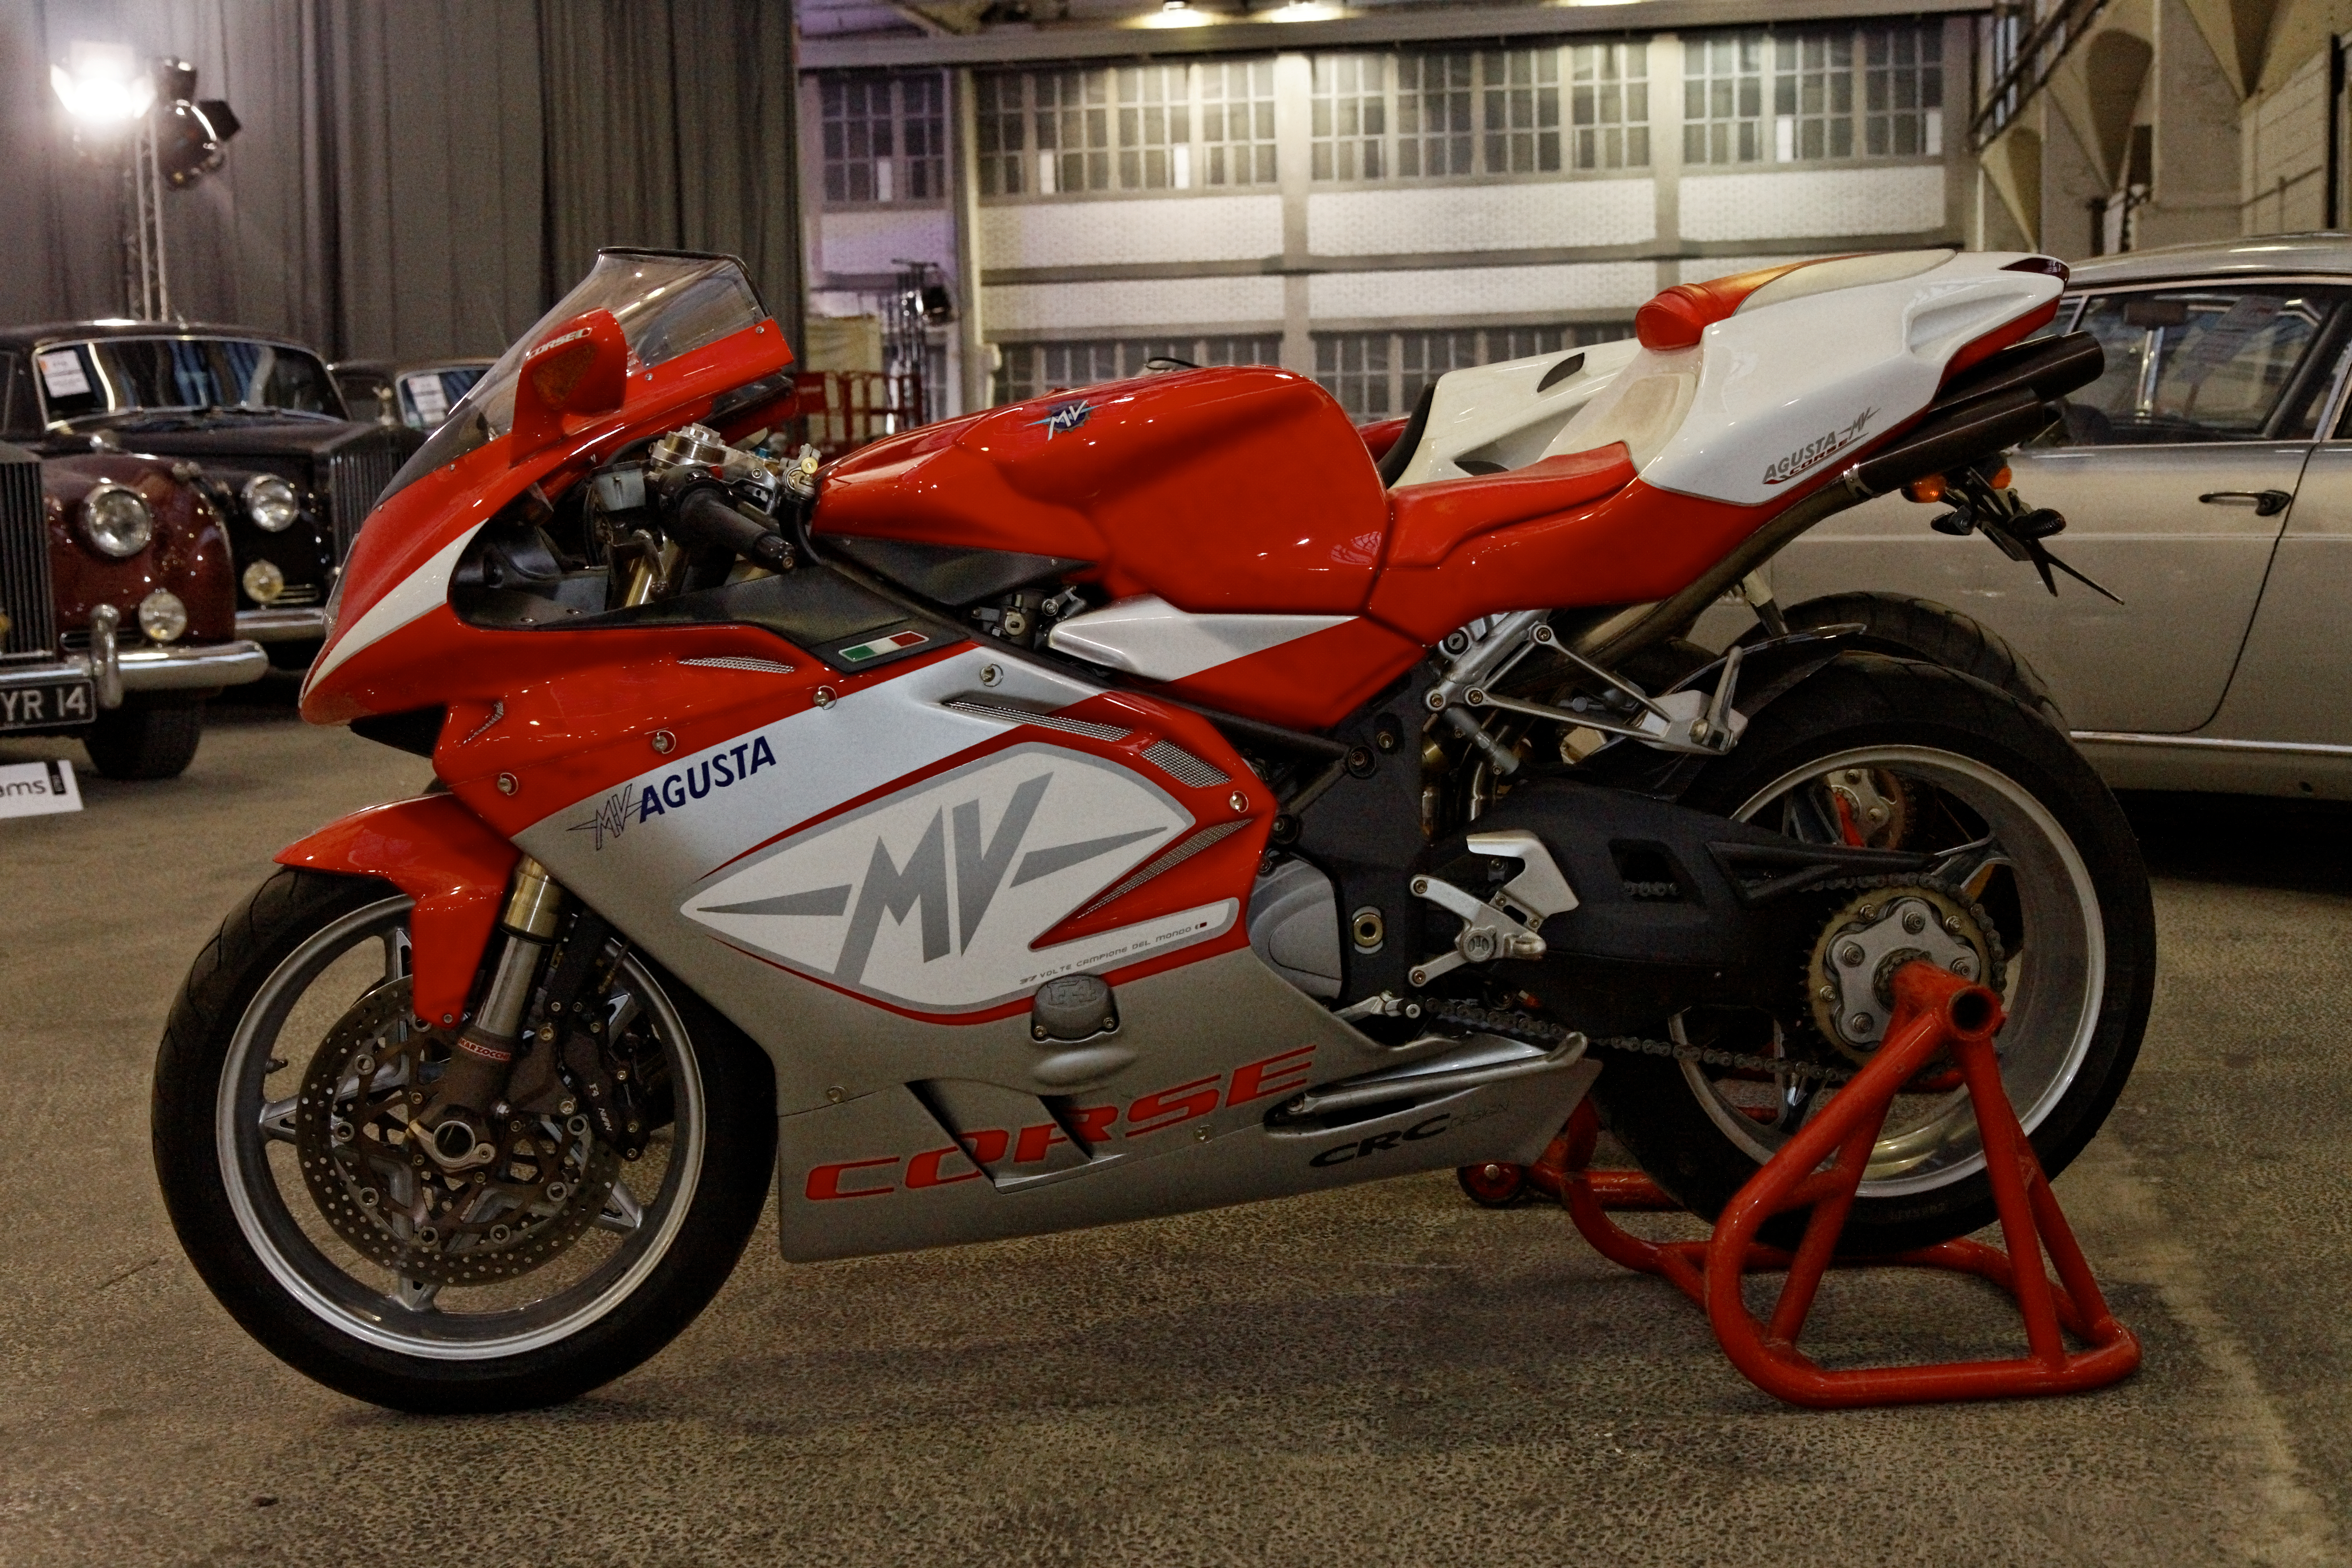 MV Agusta F4 1000 S 2006 images #113595